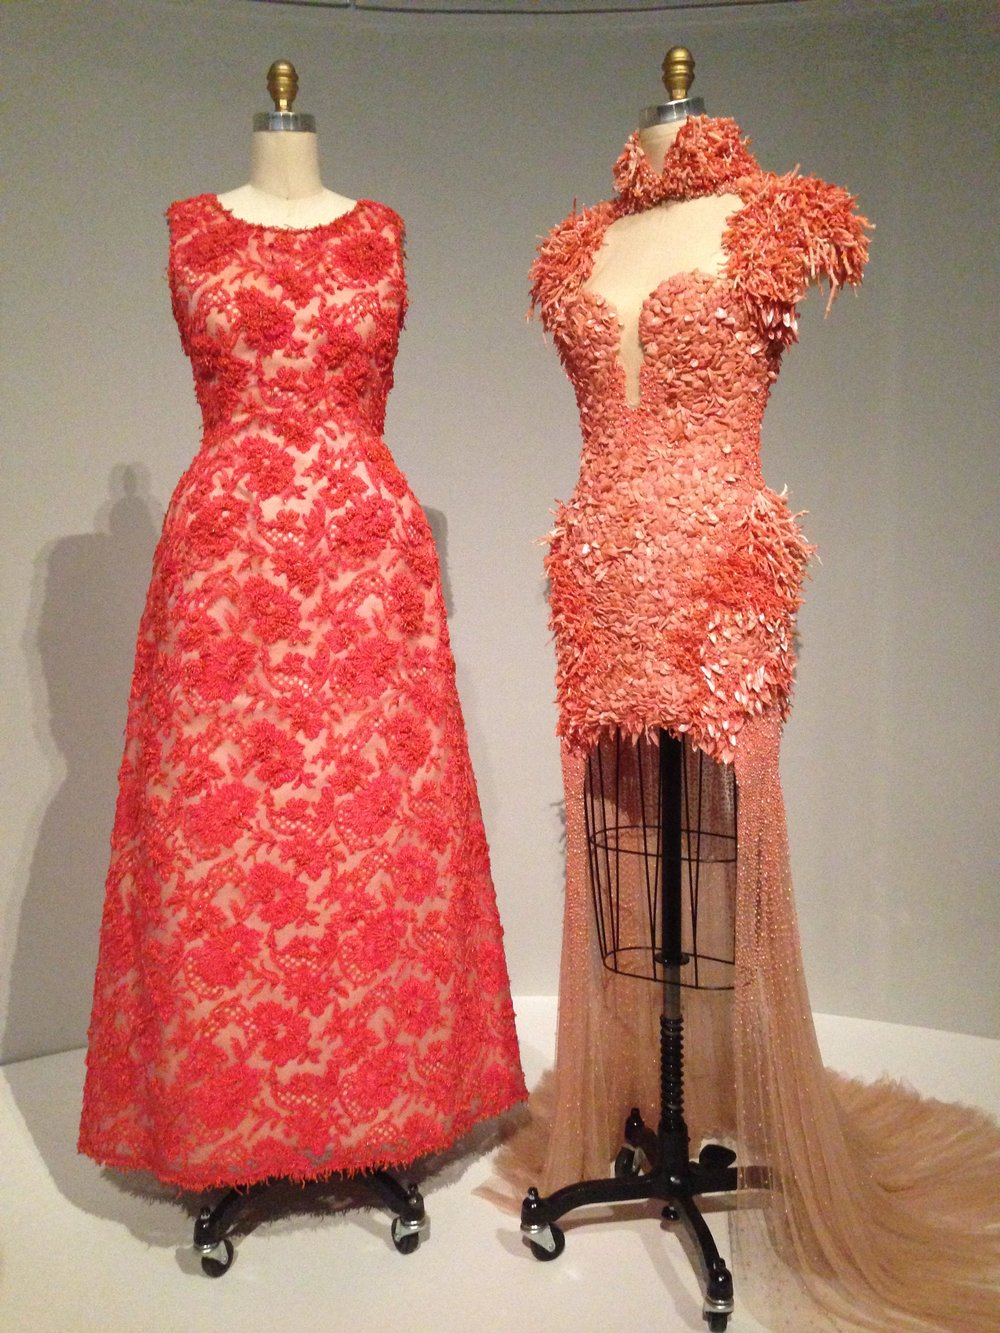 Fashion in the age of technology